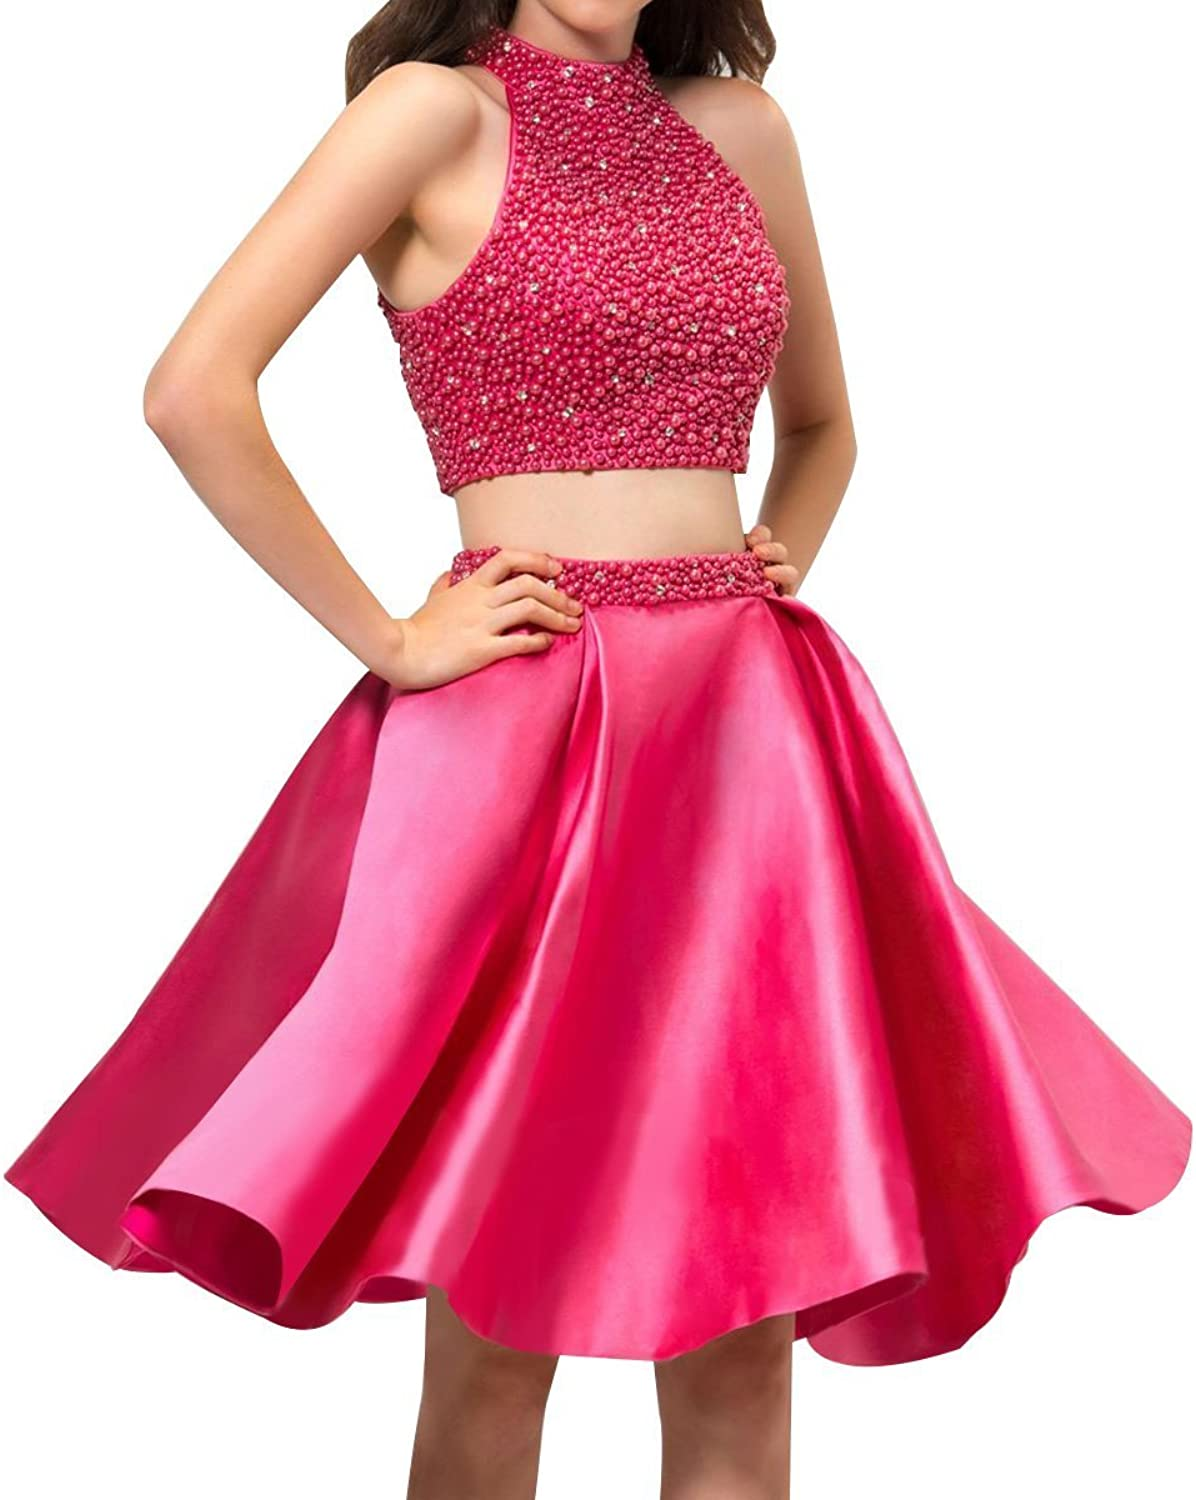 Beaded Two Pieces Homecoming Dresses Short Hlater Strapless ALine Cocktail Gowns